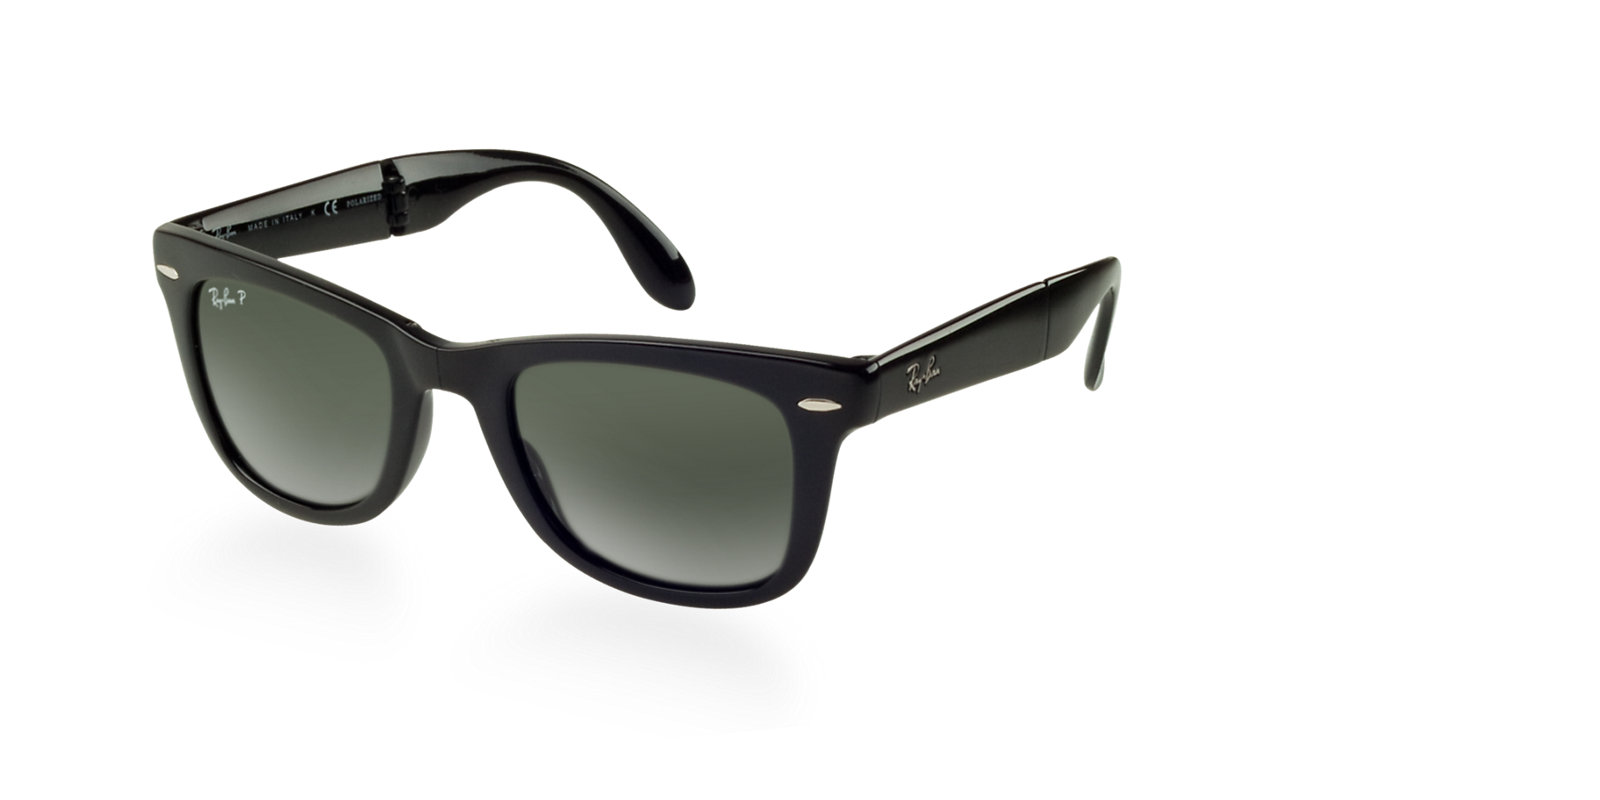 6572794c30 Previous  Next. Previous  Next. RAY-BAN RB4105 601 58 BLACK POLARIZED FOLDING  WAYFARER SUNGLASSES